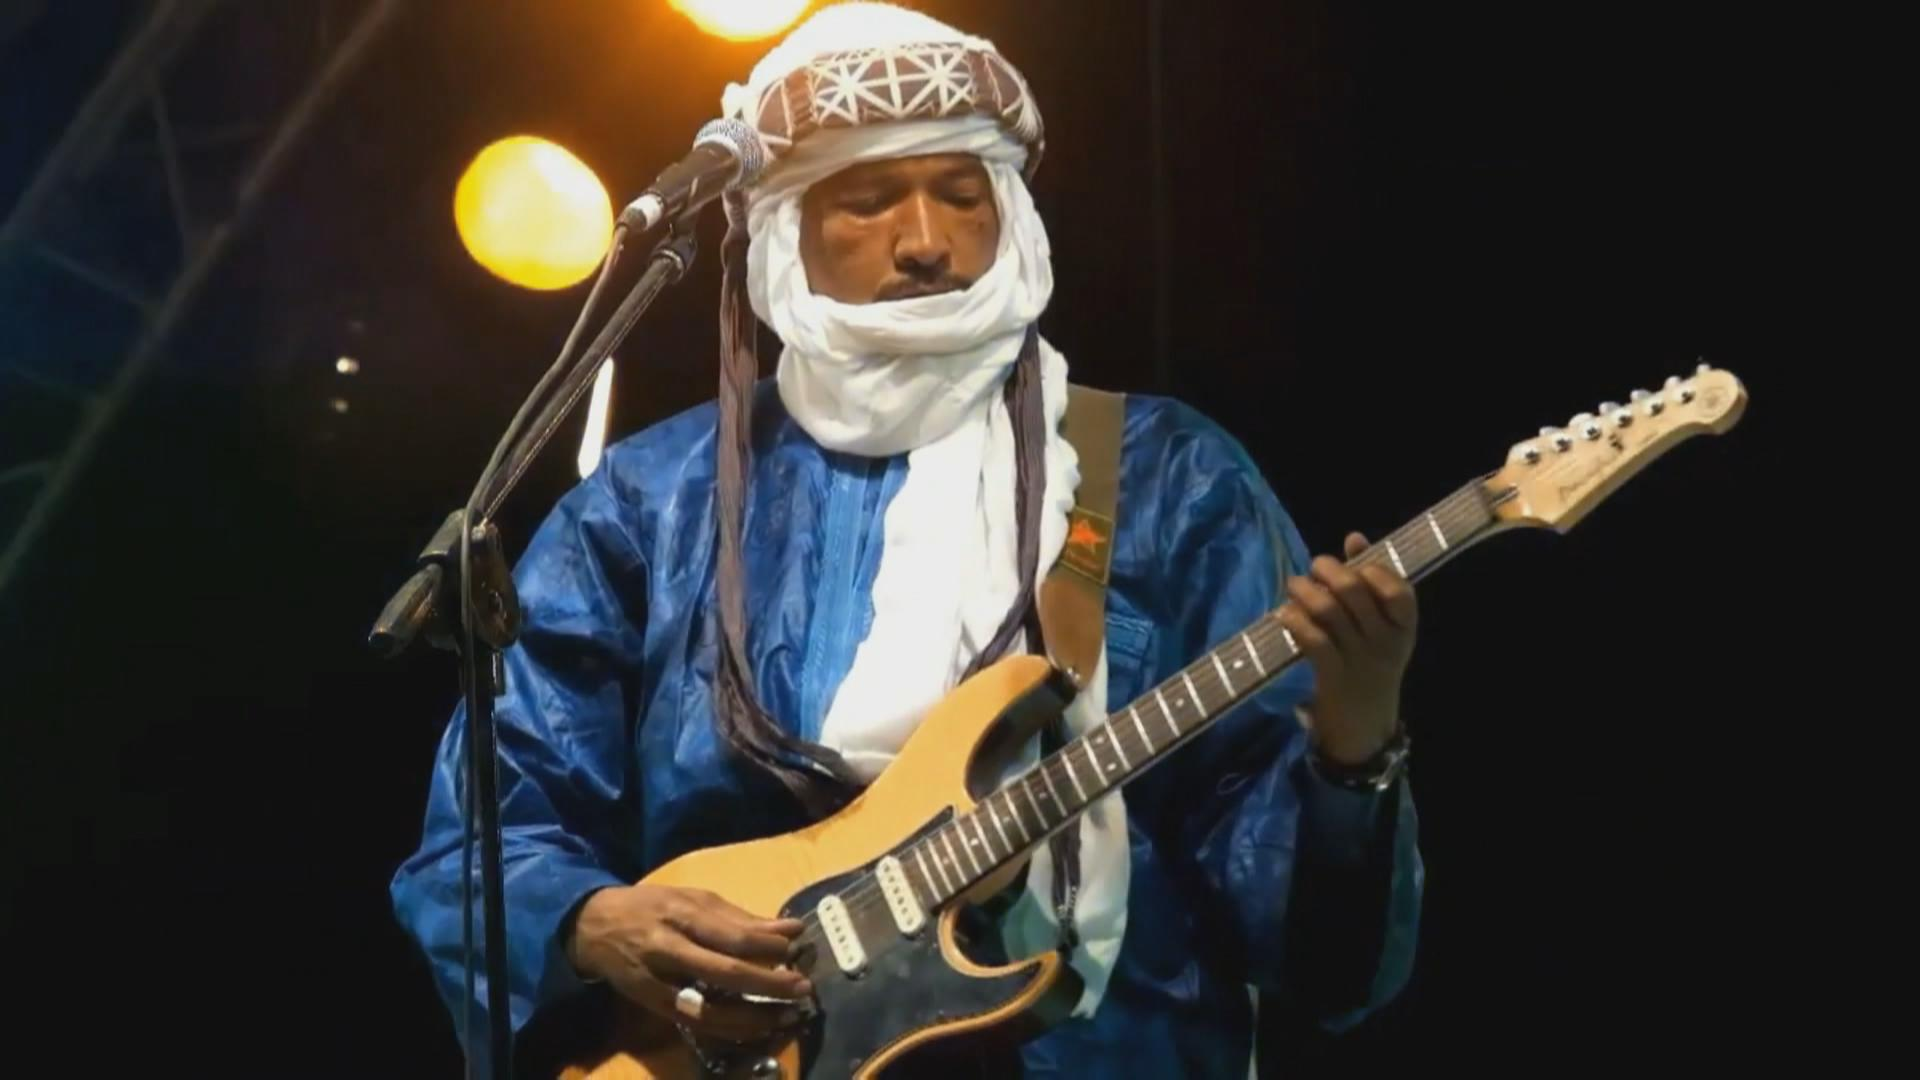 Ahmed Ag Kaedi, a Tuareg musician from Kidal, in Northern Mali. He quit military school in Libya and started playing guitar.